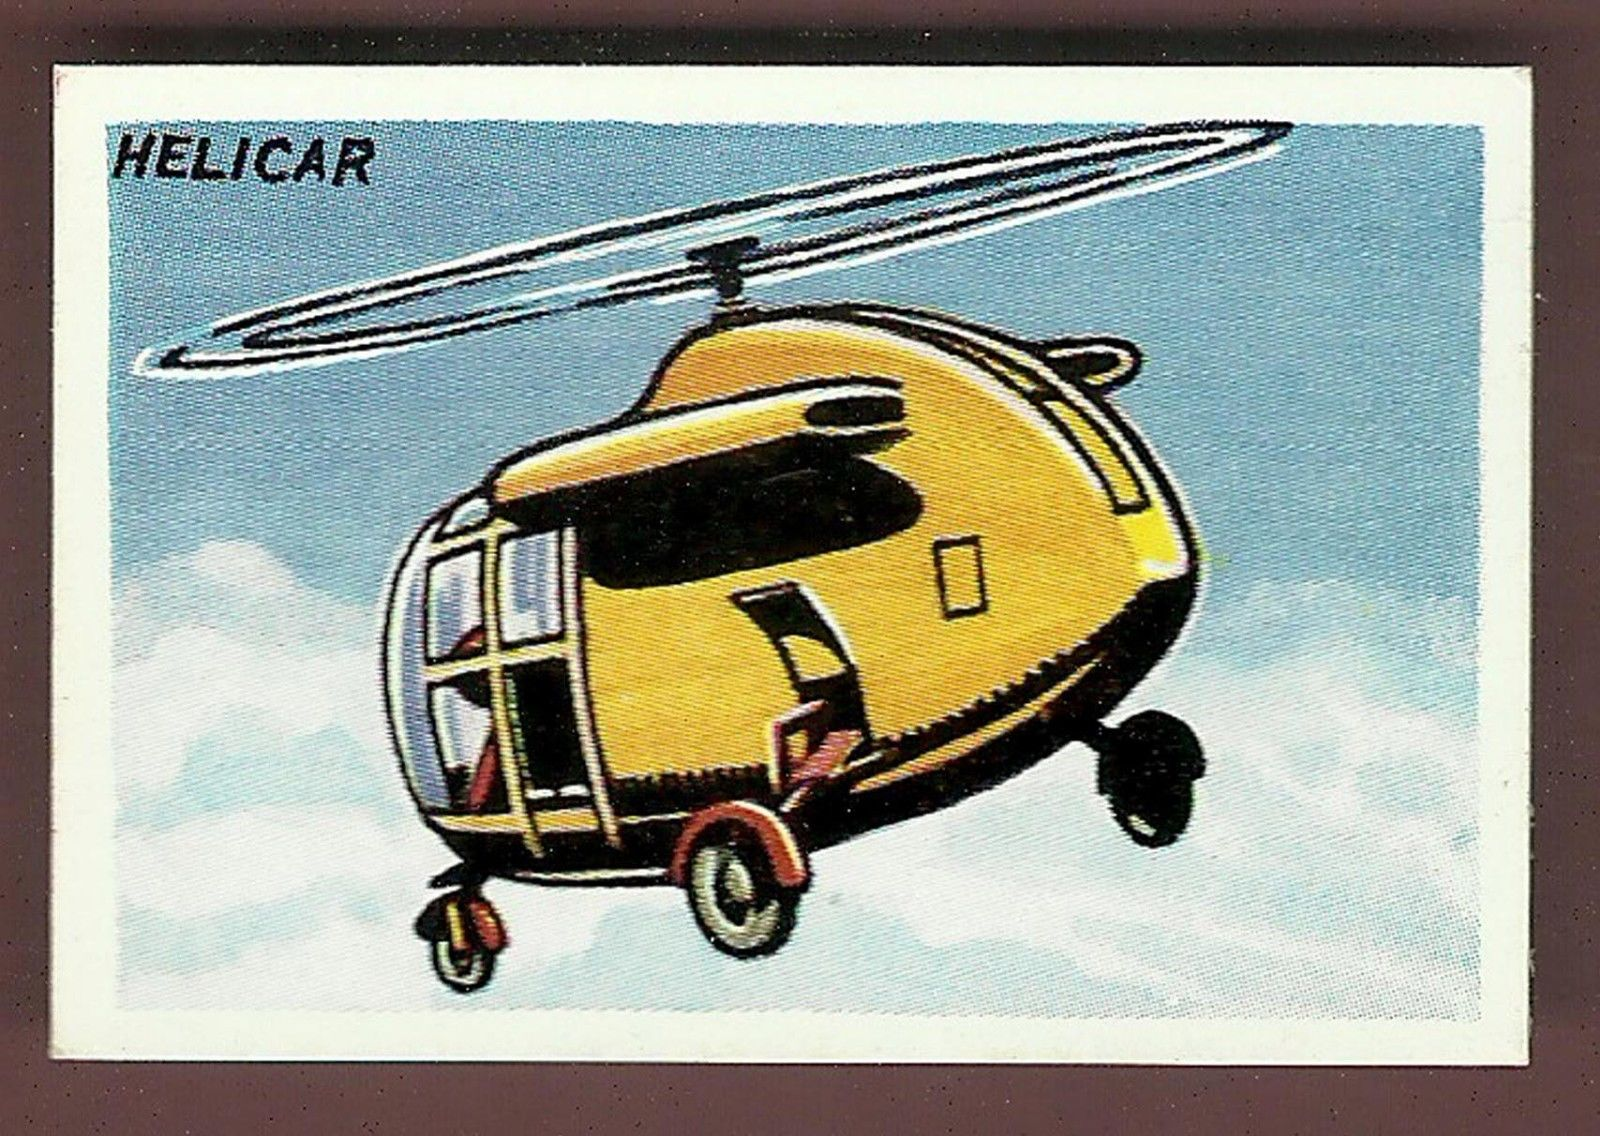 The Spacefleet Helicar, as released for the Dan Dare Picture Card series released by Calvert in 1954. Via EBay